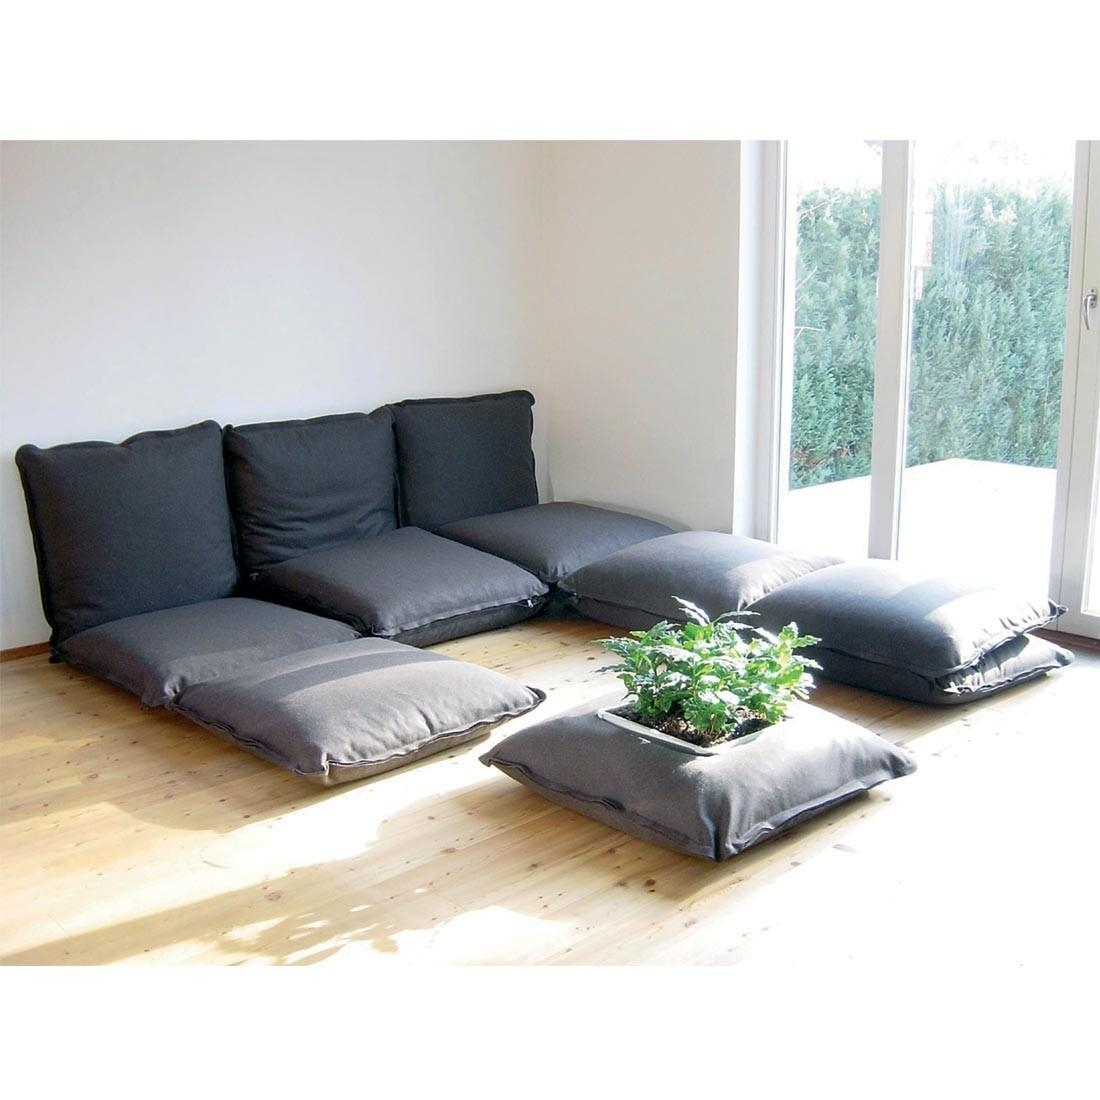 sofa pads uk taylor king clearance 20 best collection of floor cushion sofas ideas